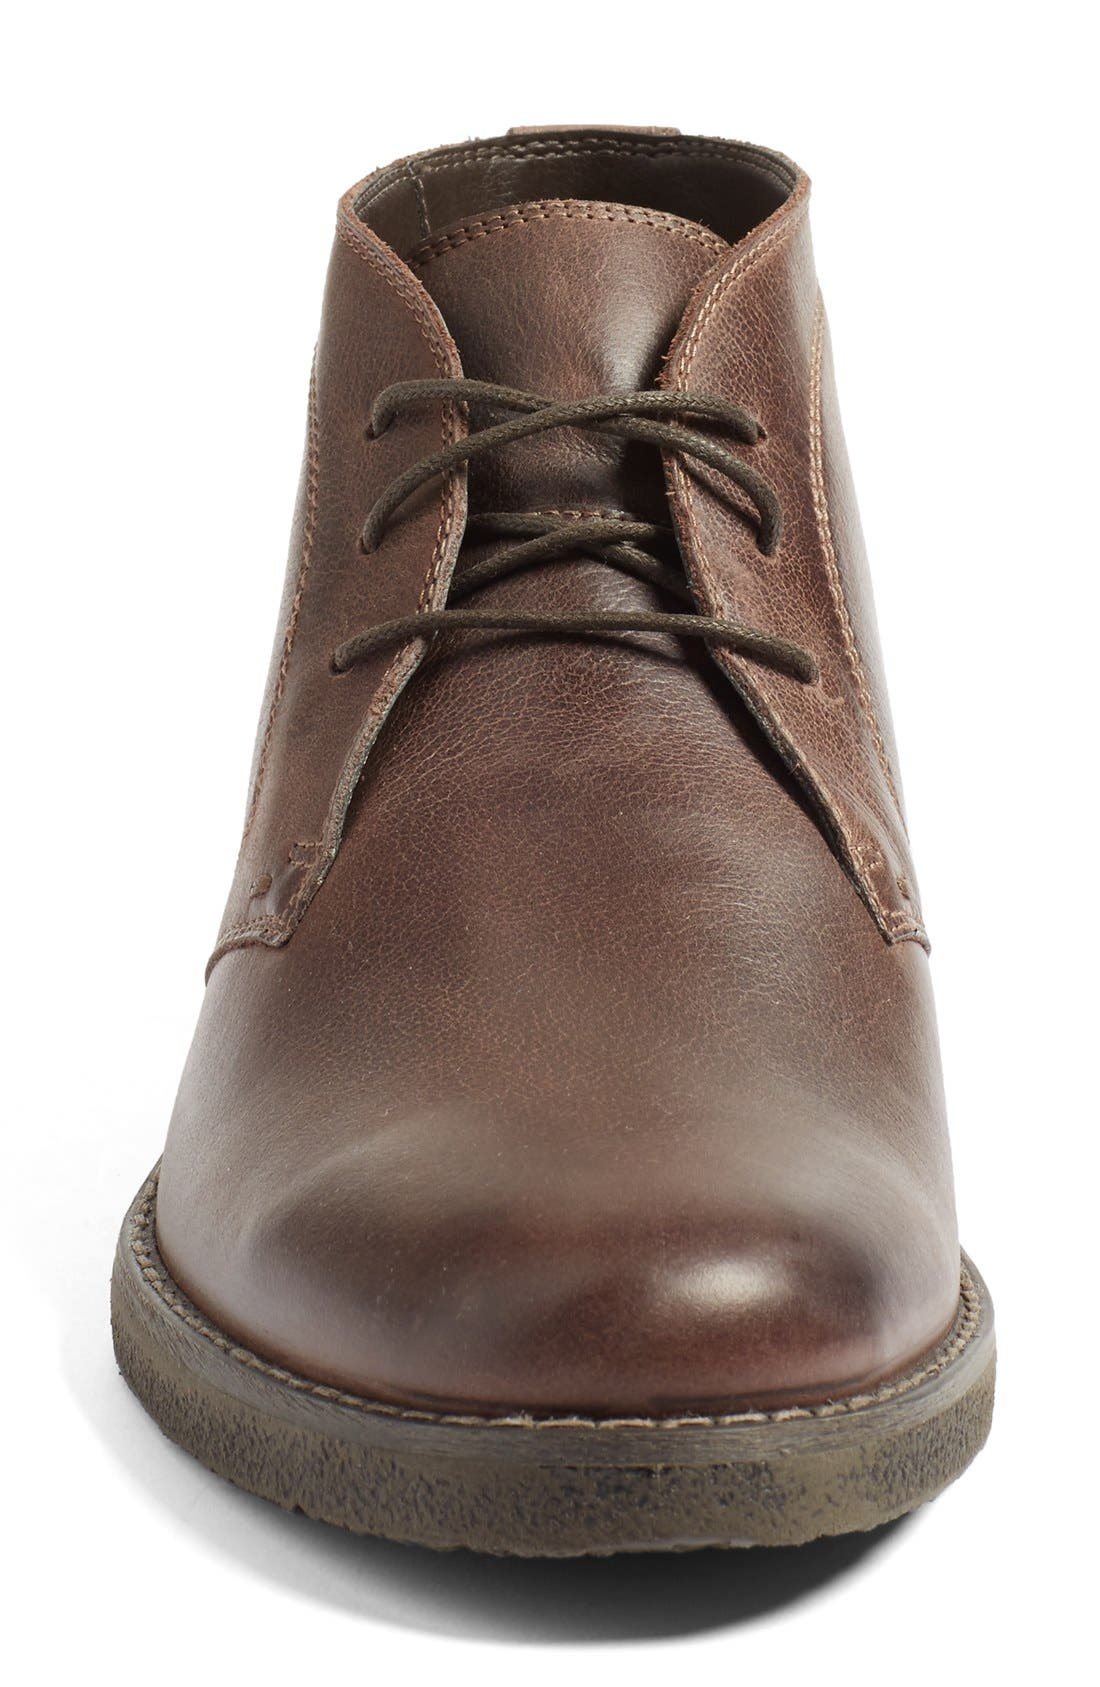 Alternate Image 3  - 1901 'Tyler' Chukka Boot (Men)